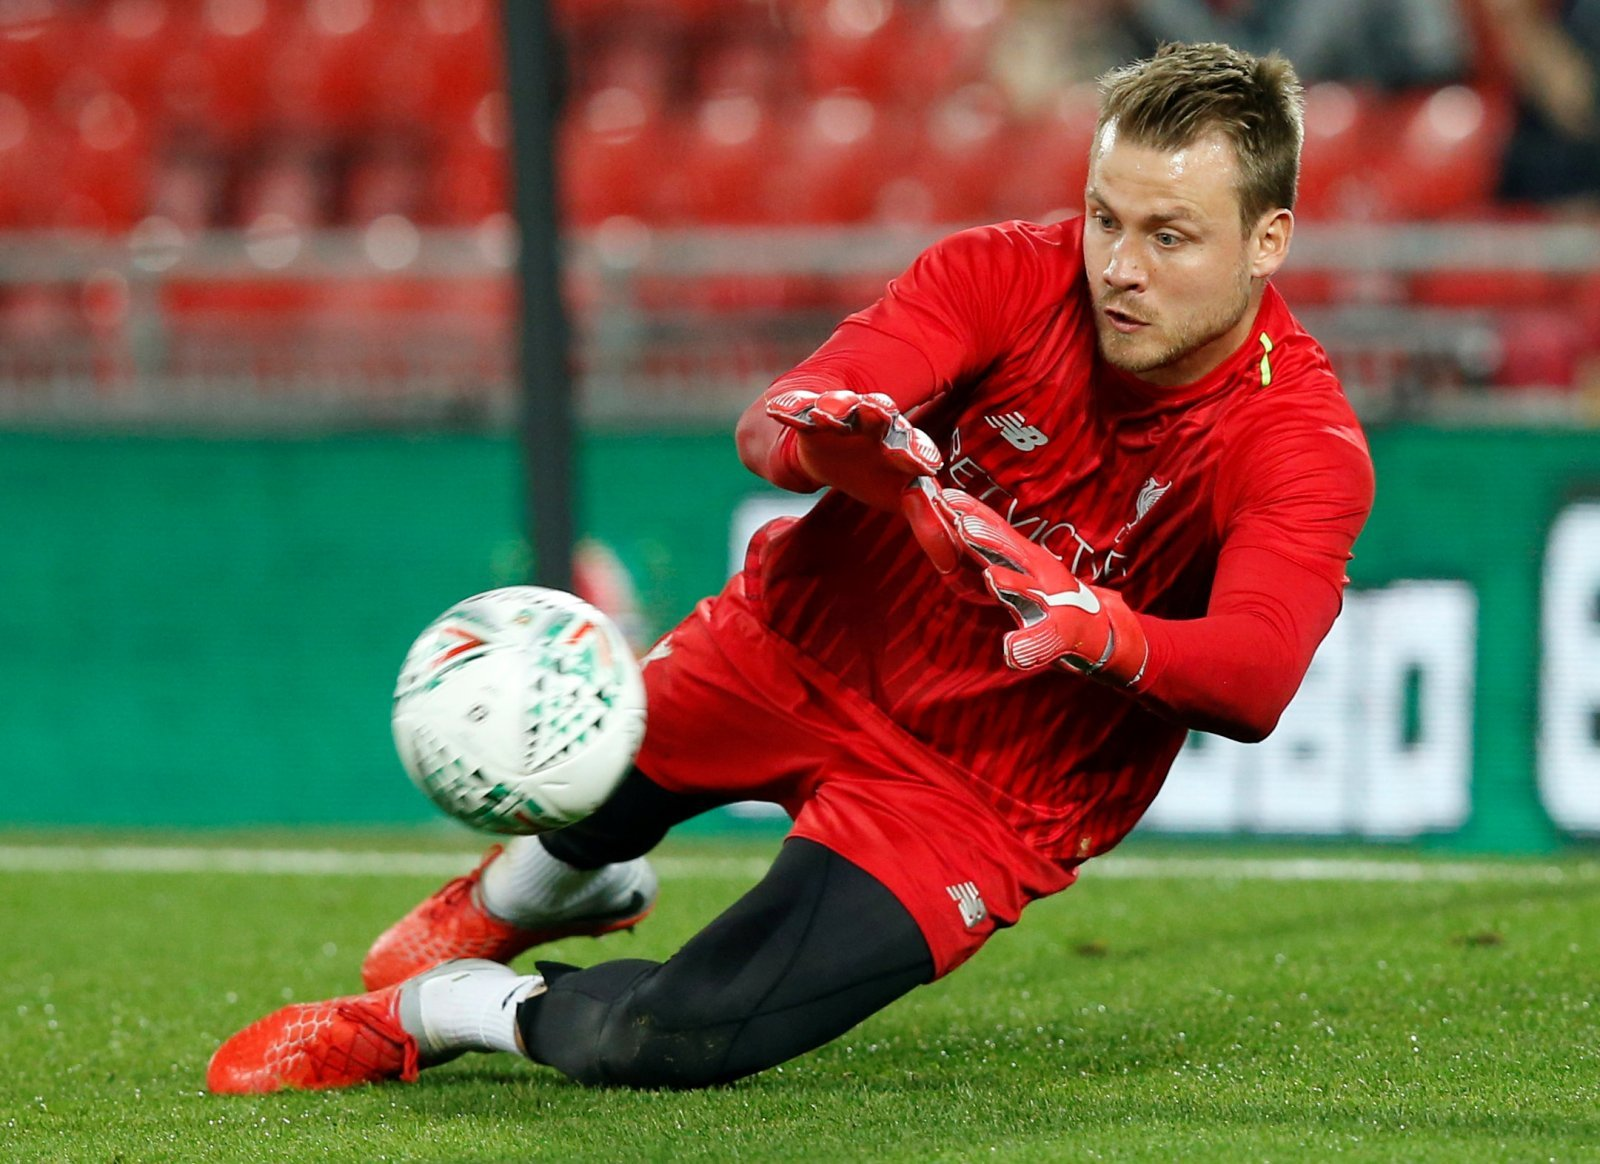 Majority of Liverpool fans want to see Mignolet go instead of Karius